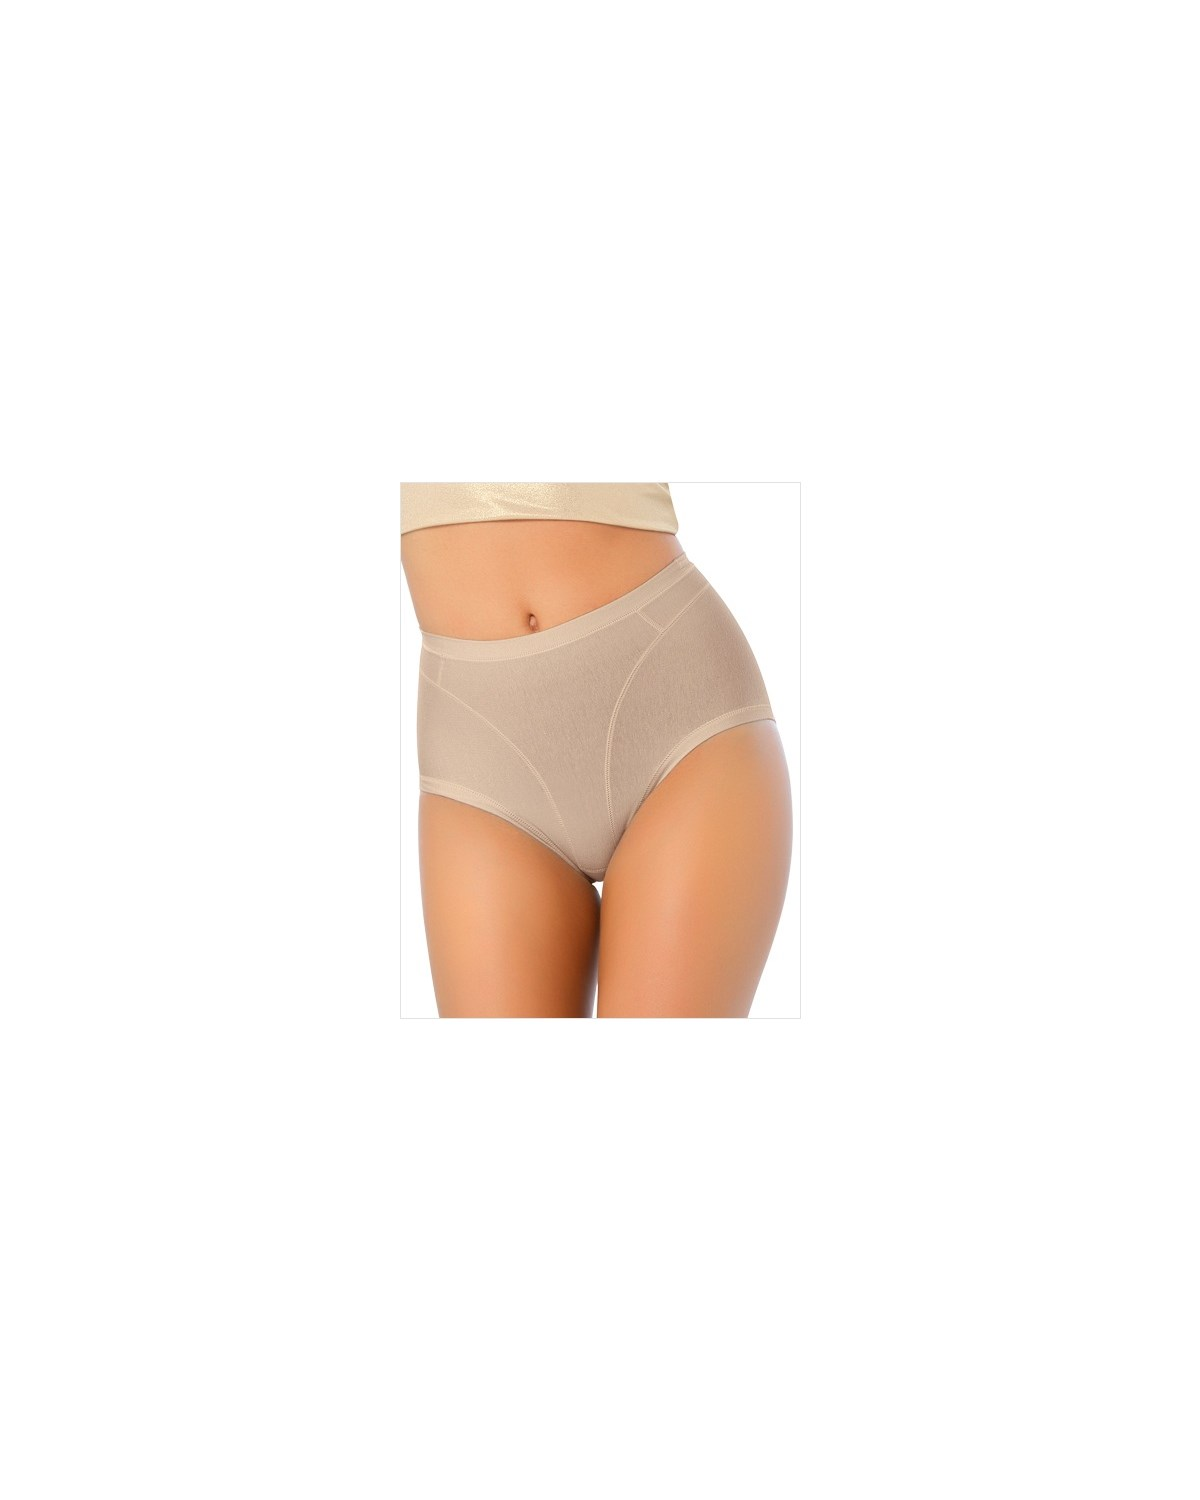 high cut panty shaper in cotton-802- Nude-MainImage